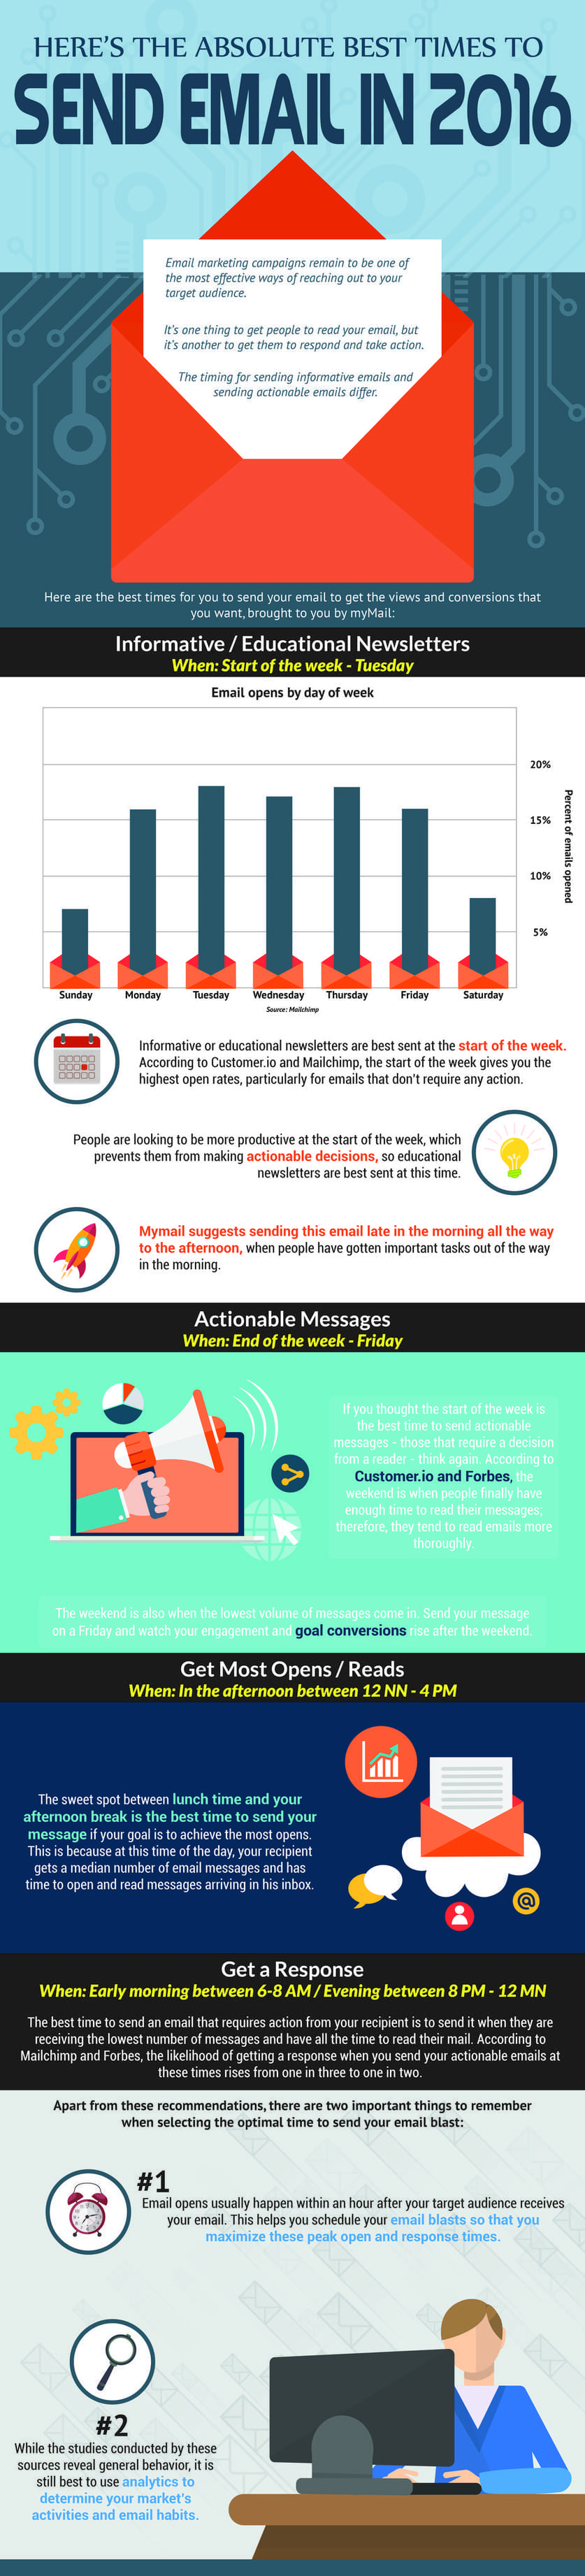 email infographic sending times